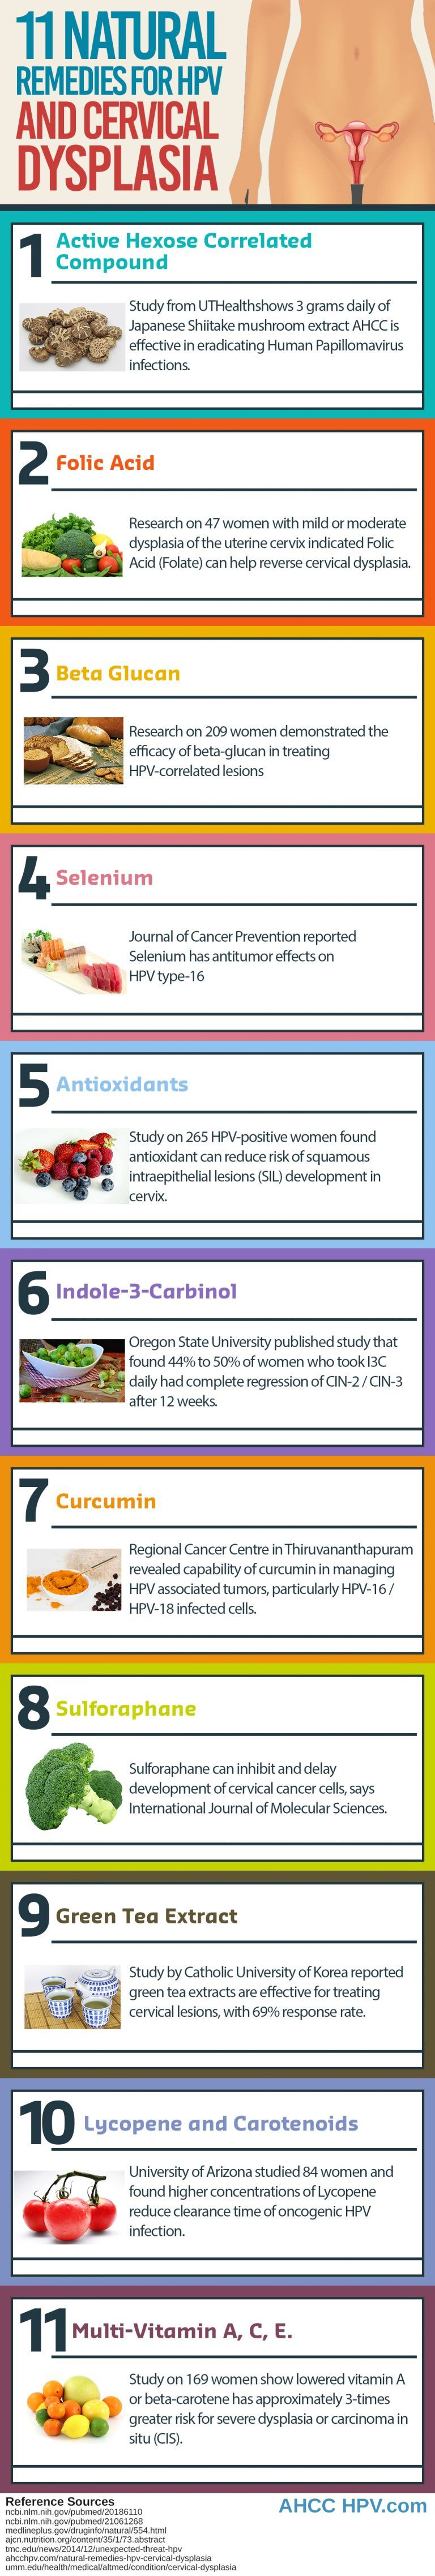 hpv cure foods)